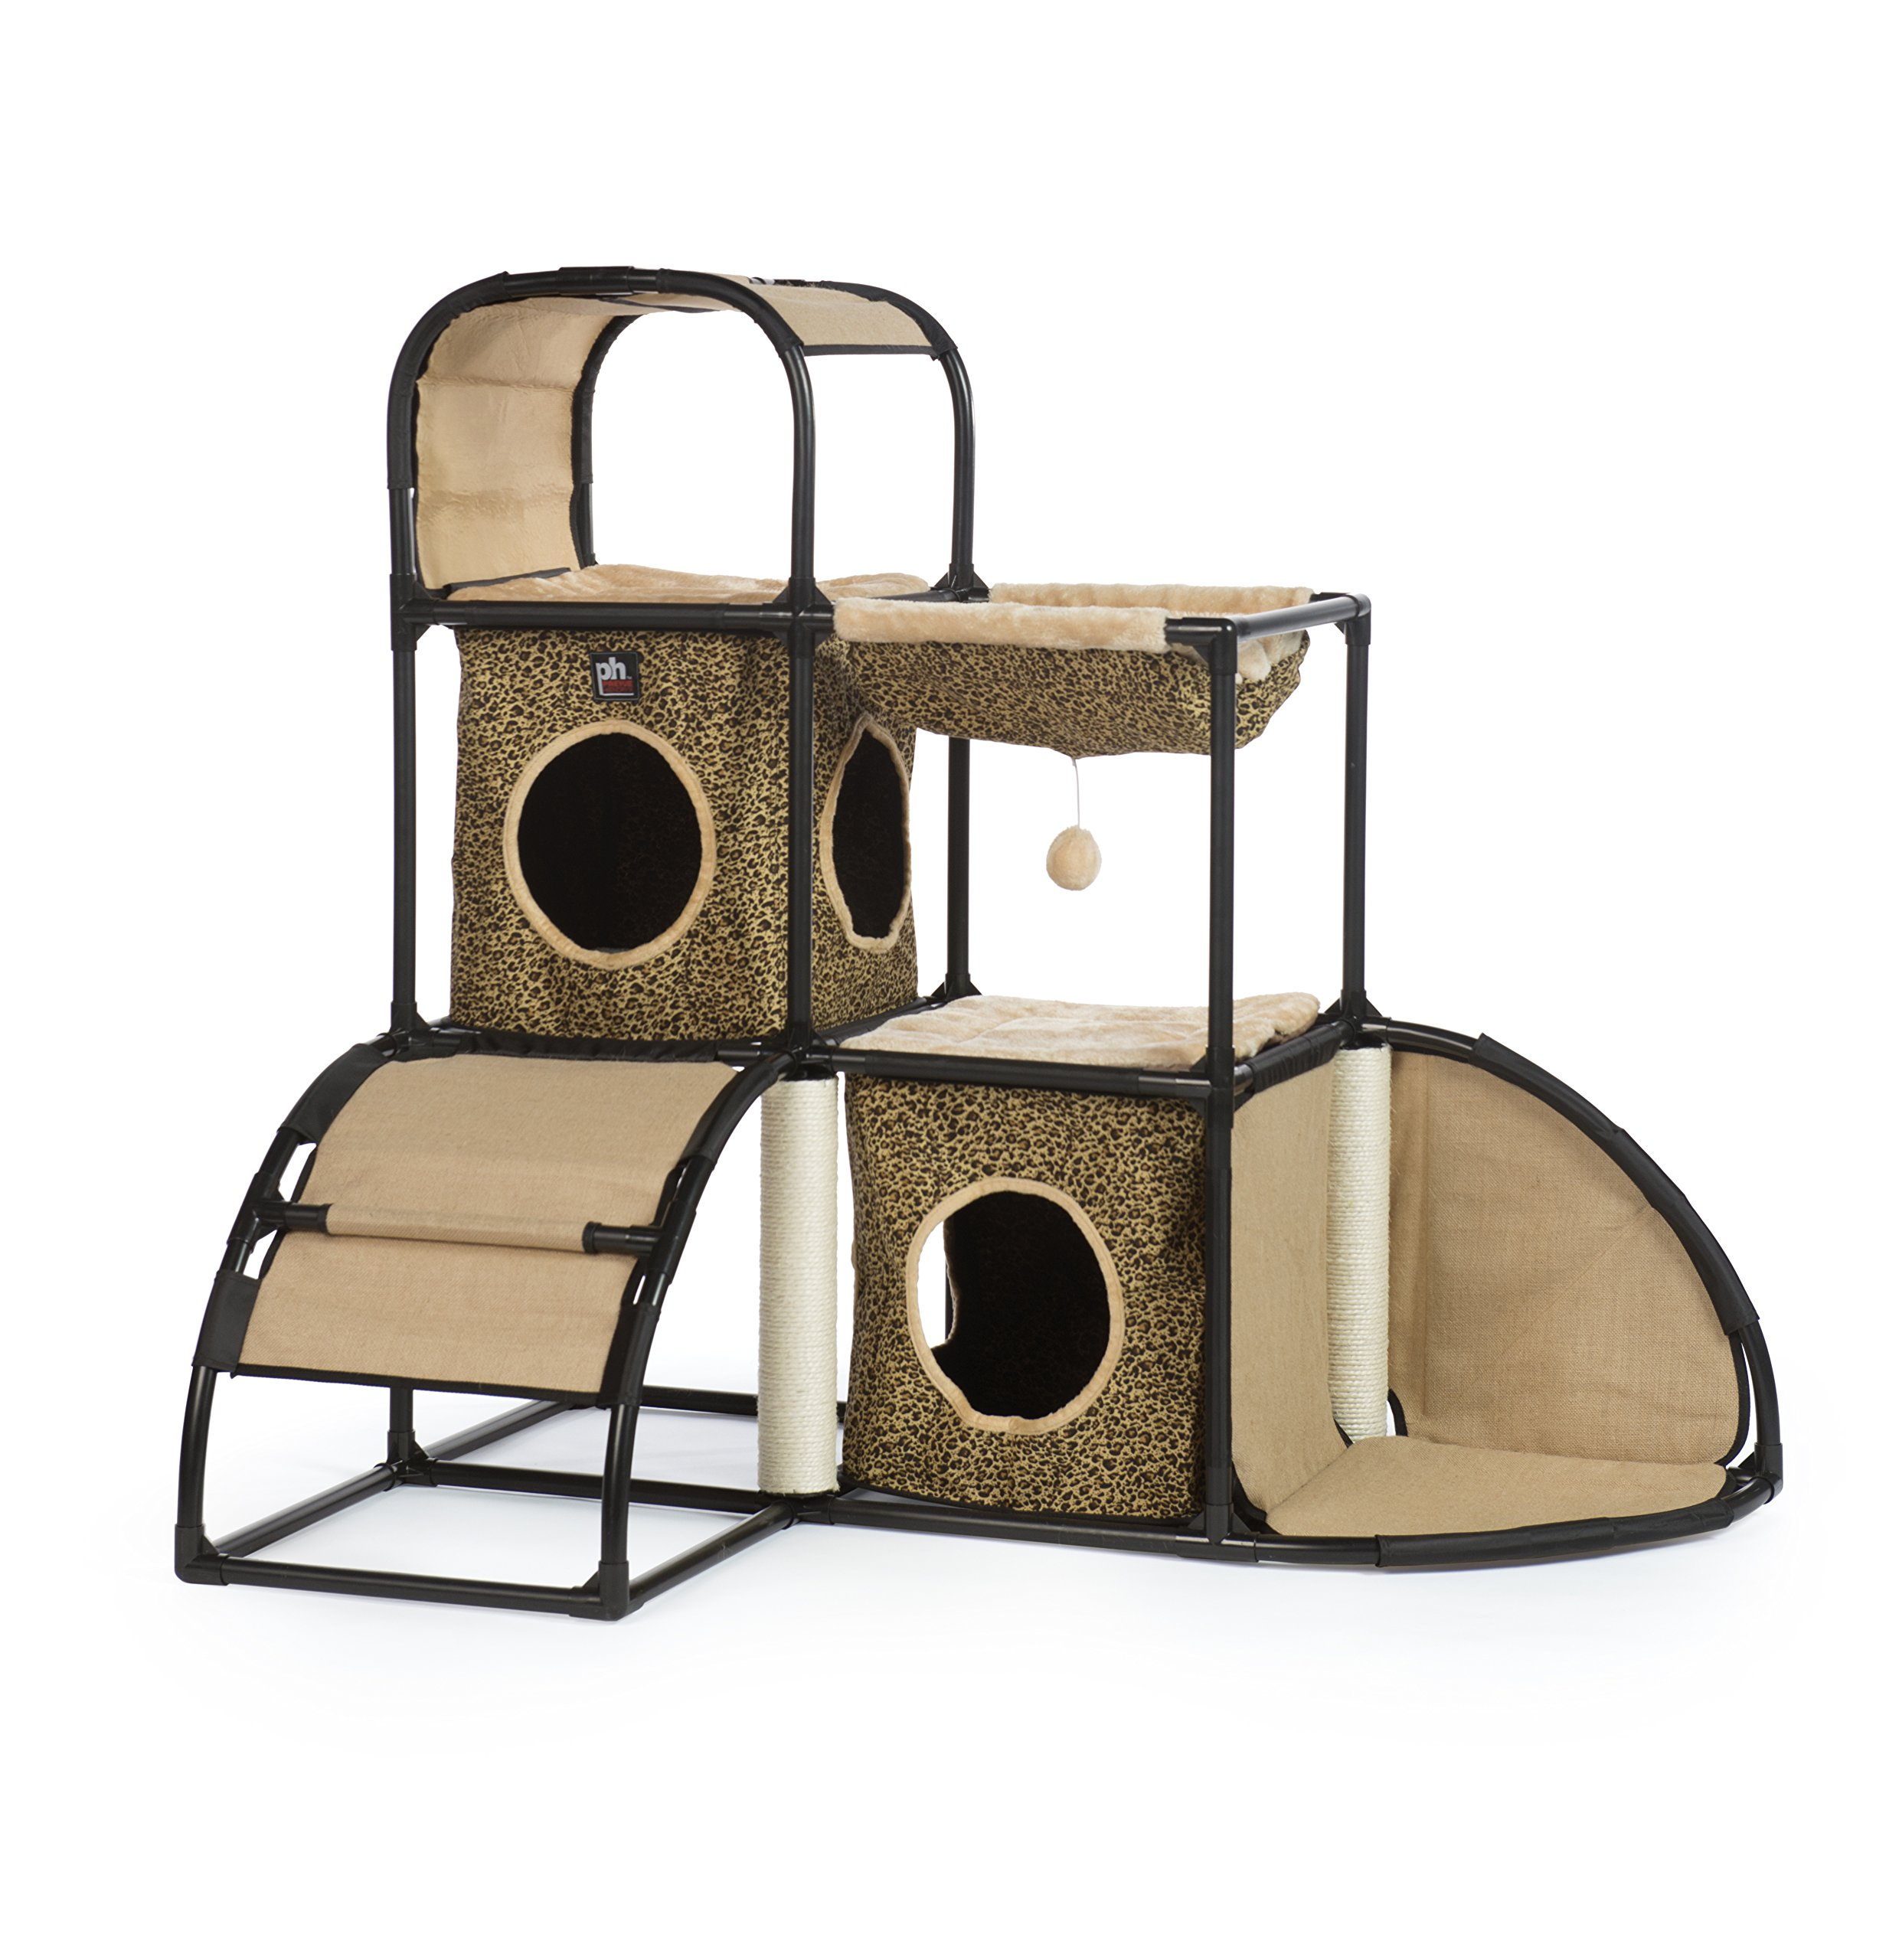 Prevue Pet Products Catville Townhome, Leopard Print